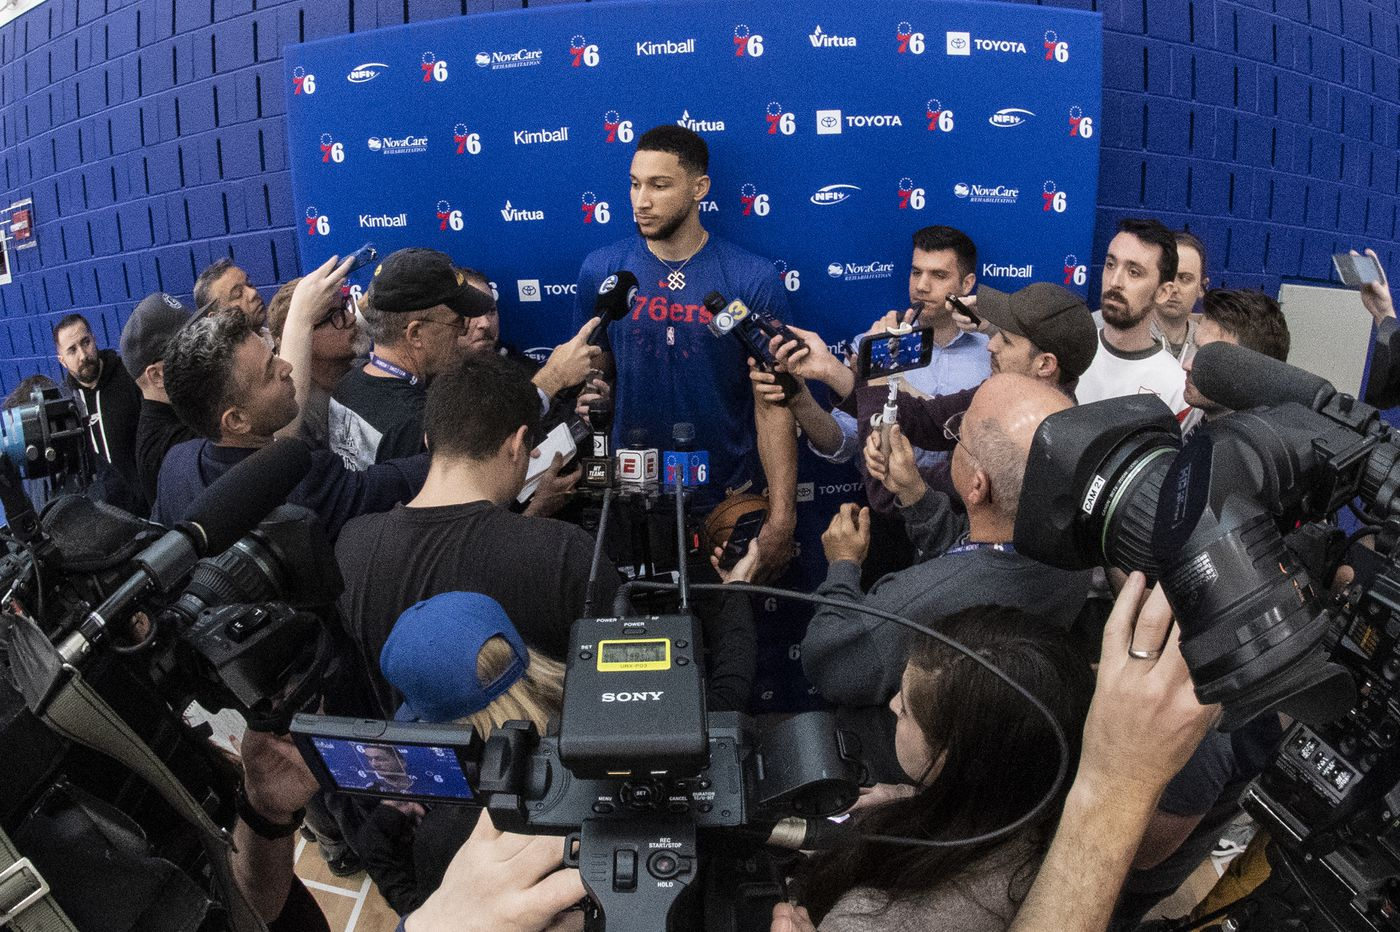 Sixers say nothing about report that Brett Brown is coaching for his job, Ben Simmons missed game due to partying